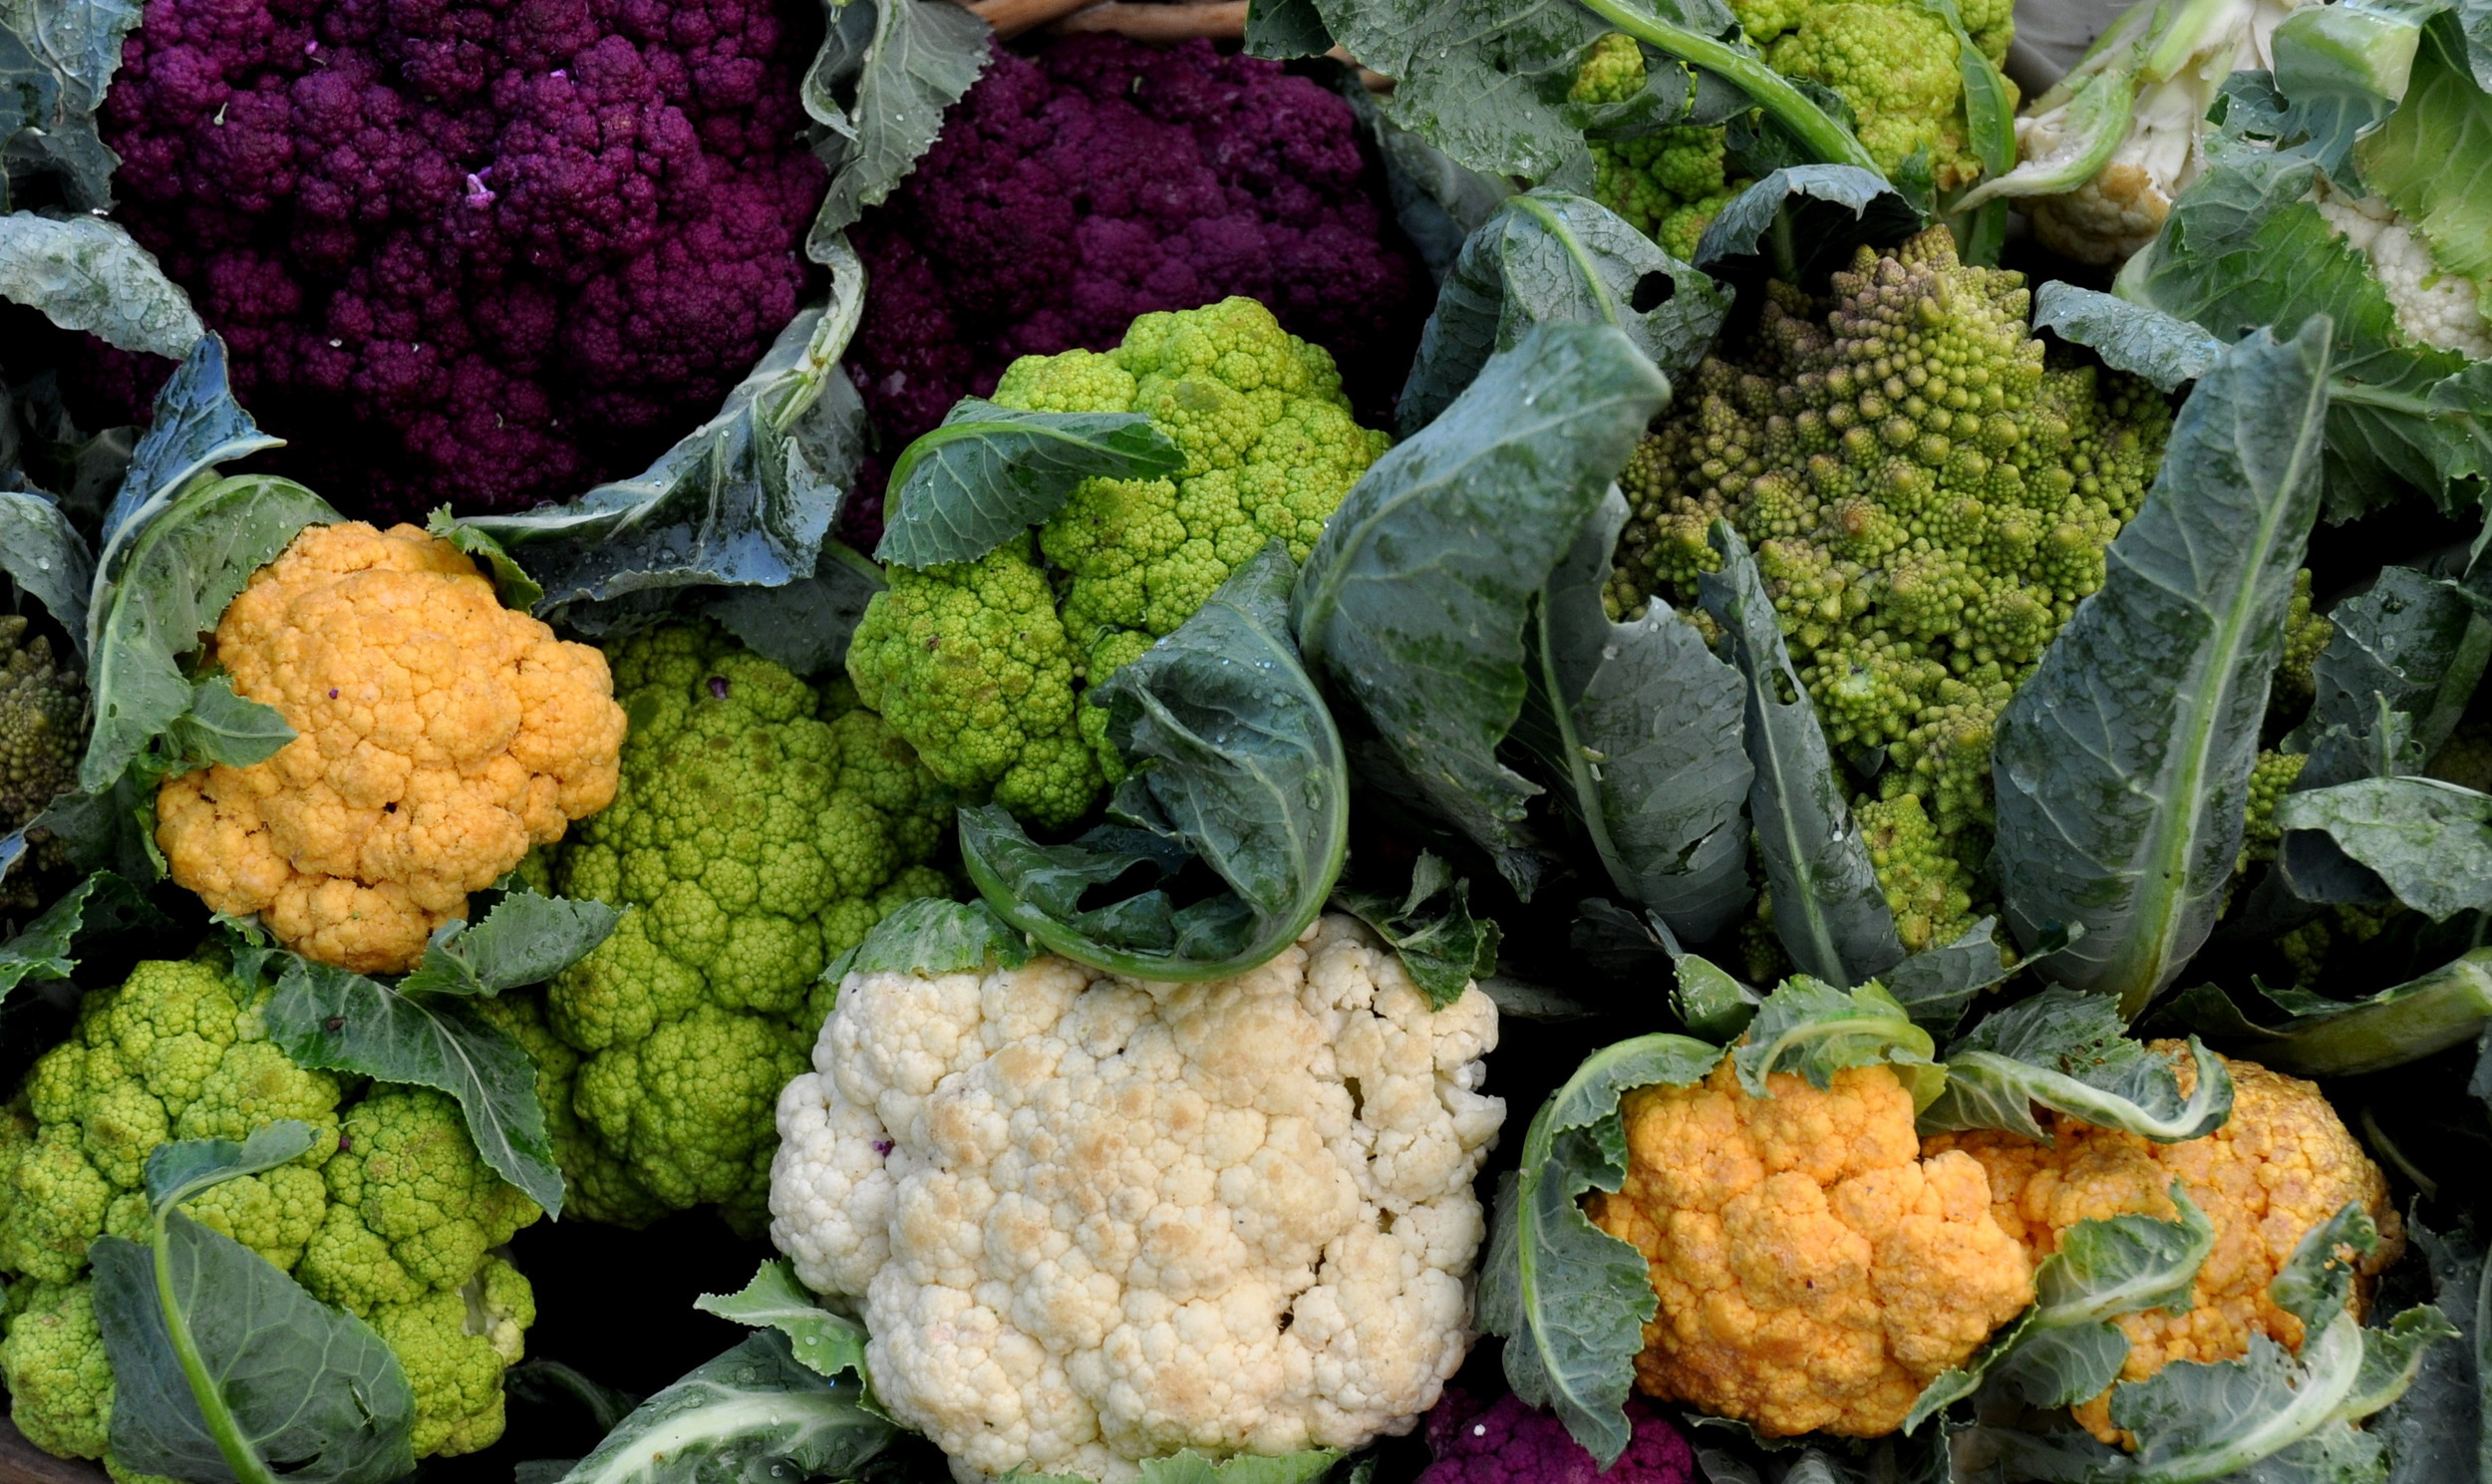 Cauliflower in every color from Growing Things Farm. Photo copyright 2011 by Zachary D. Lyons.